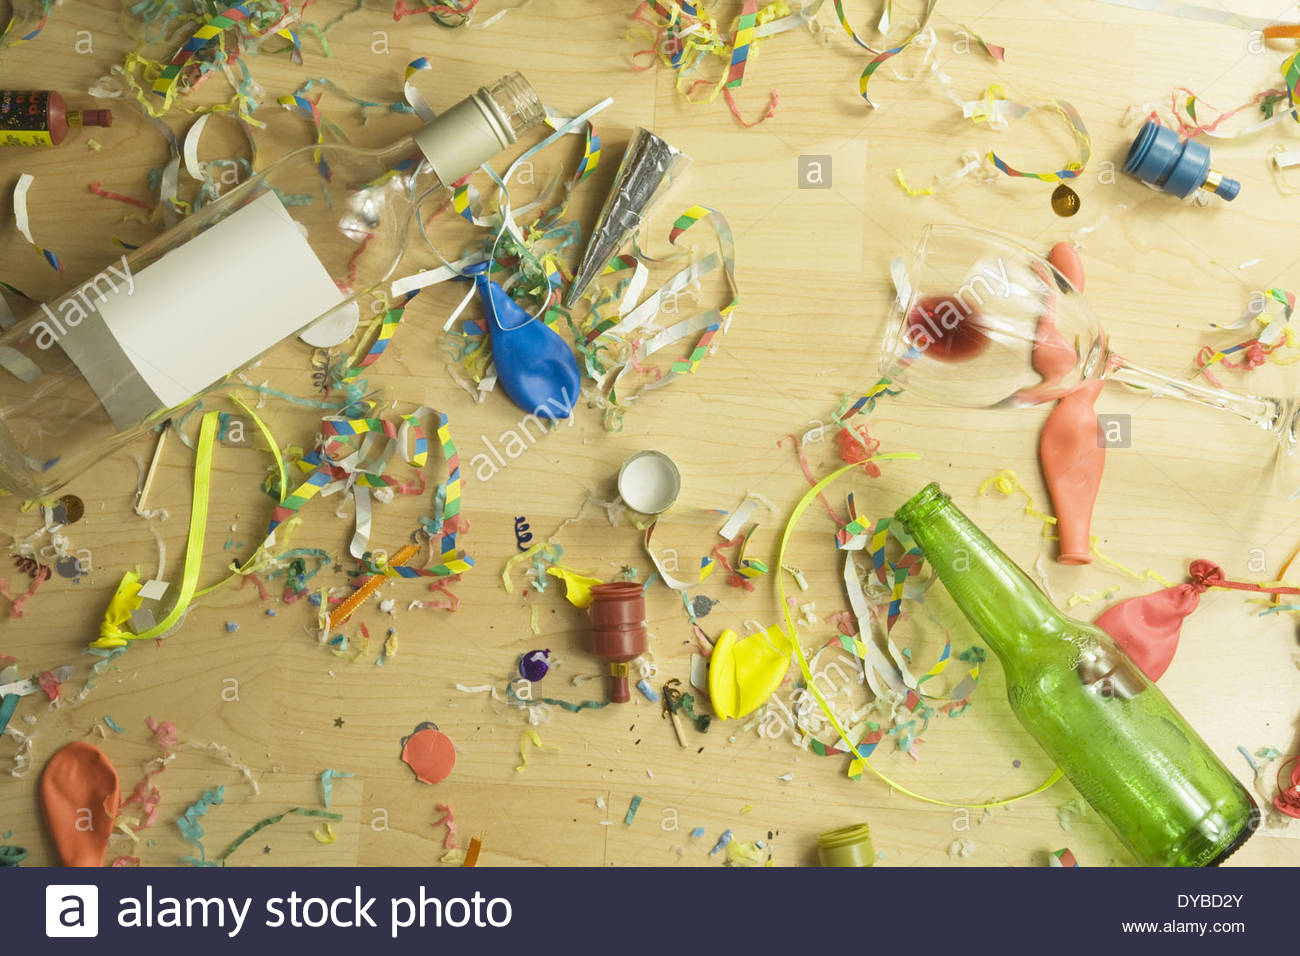 After Party Mess Stockfotos & After Party Mess Bilder - Alamy